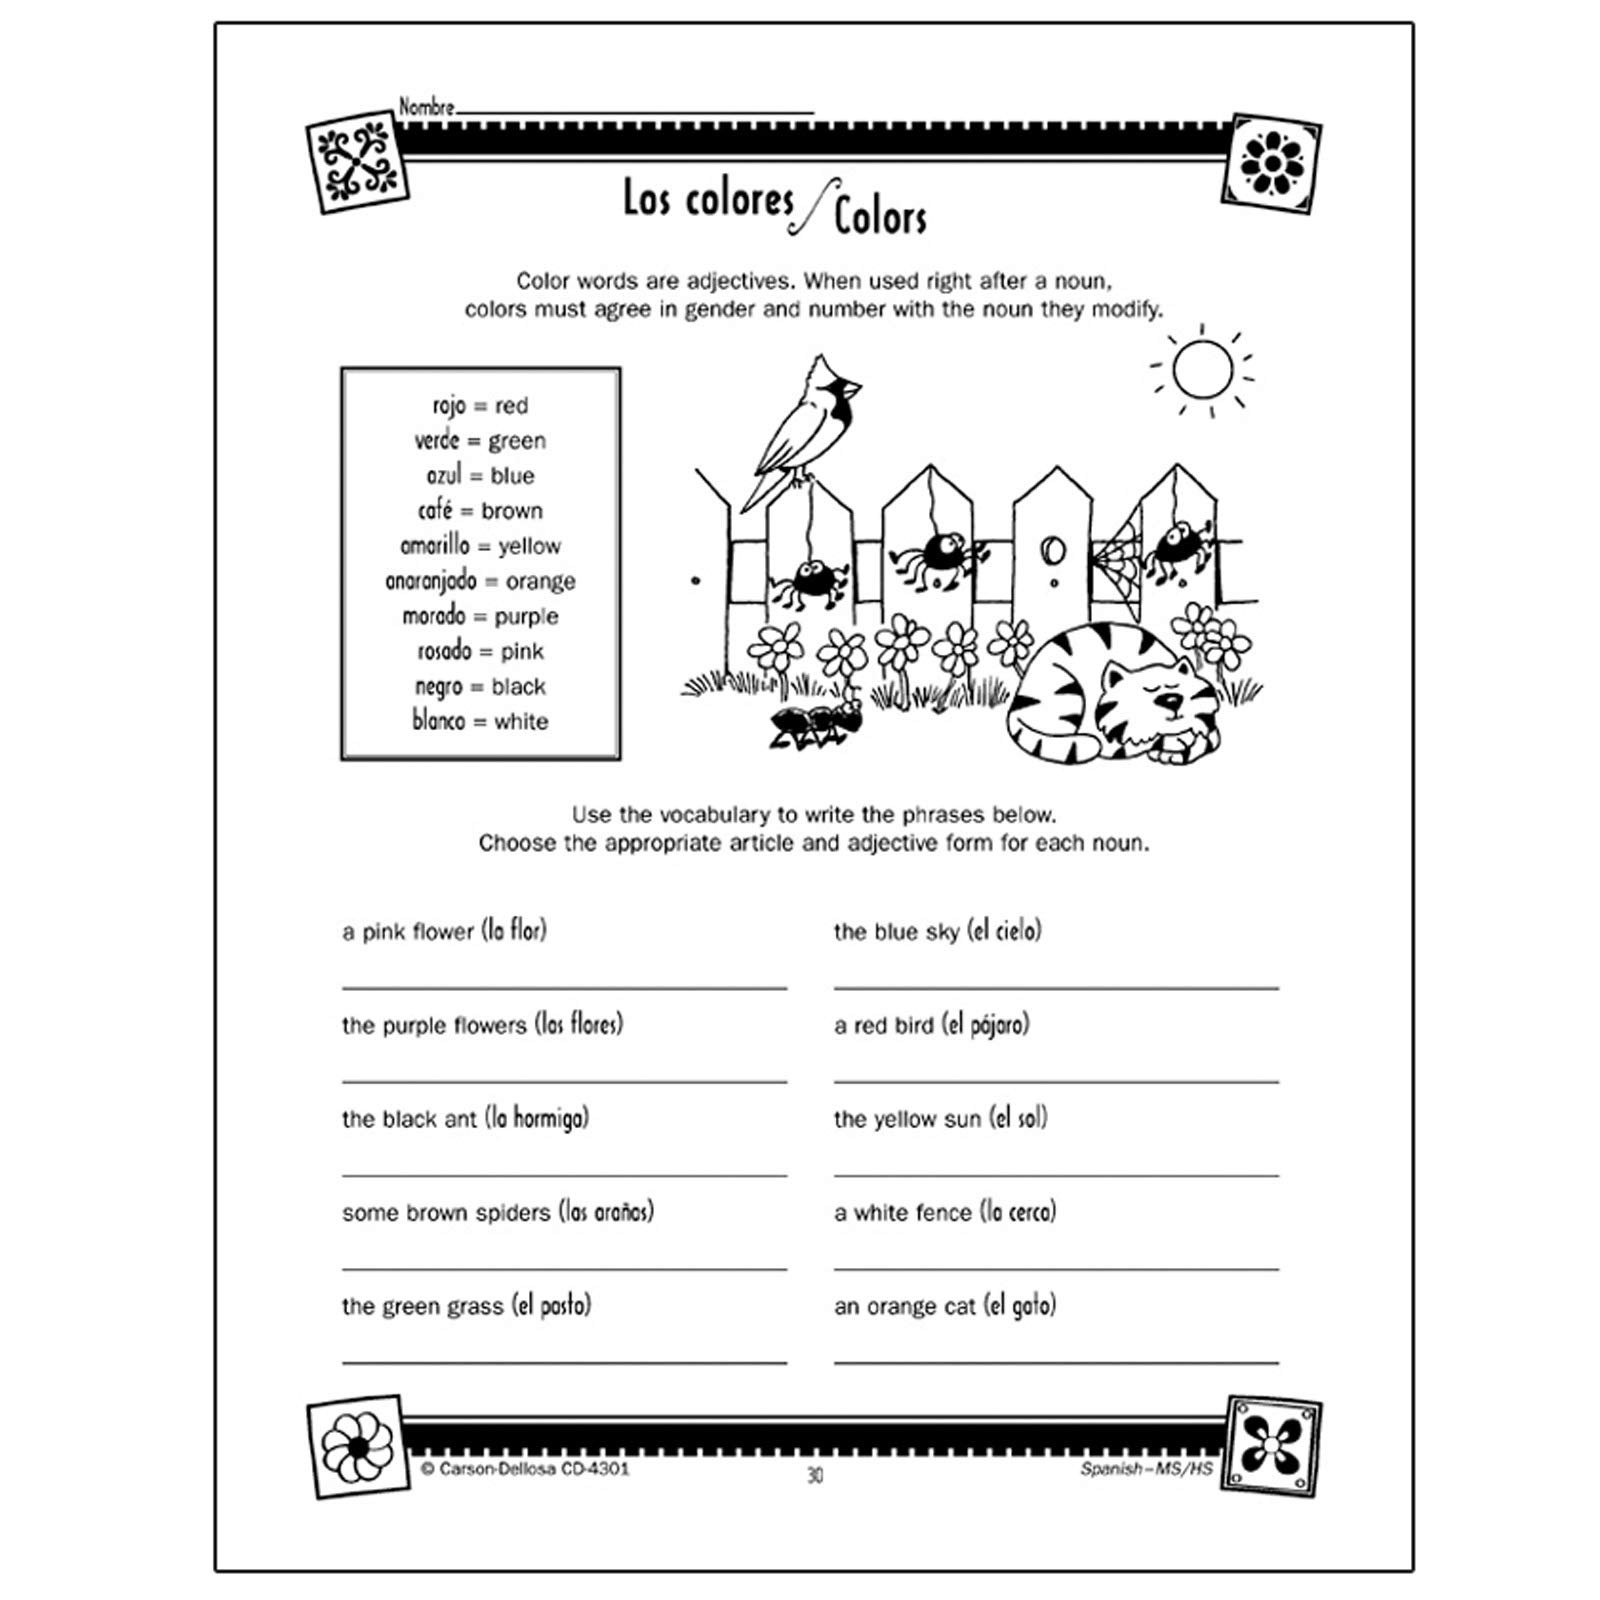 High School Spanish Worksheets Carson Dellosa Skills for Success Spanish Workbook